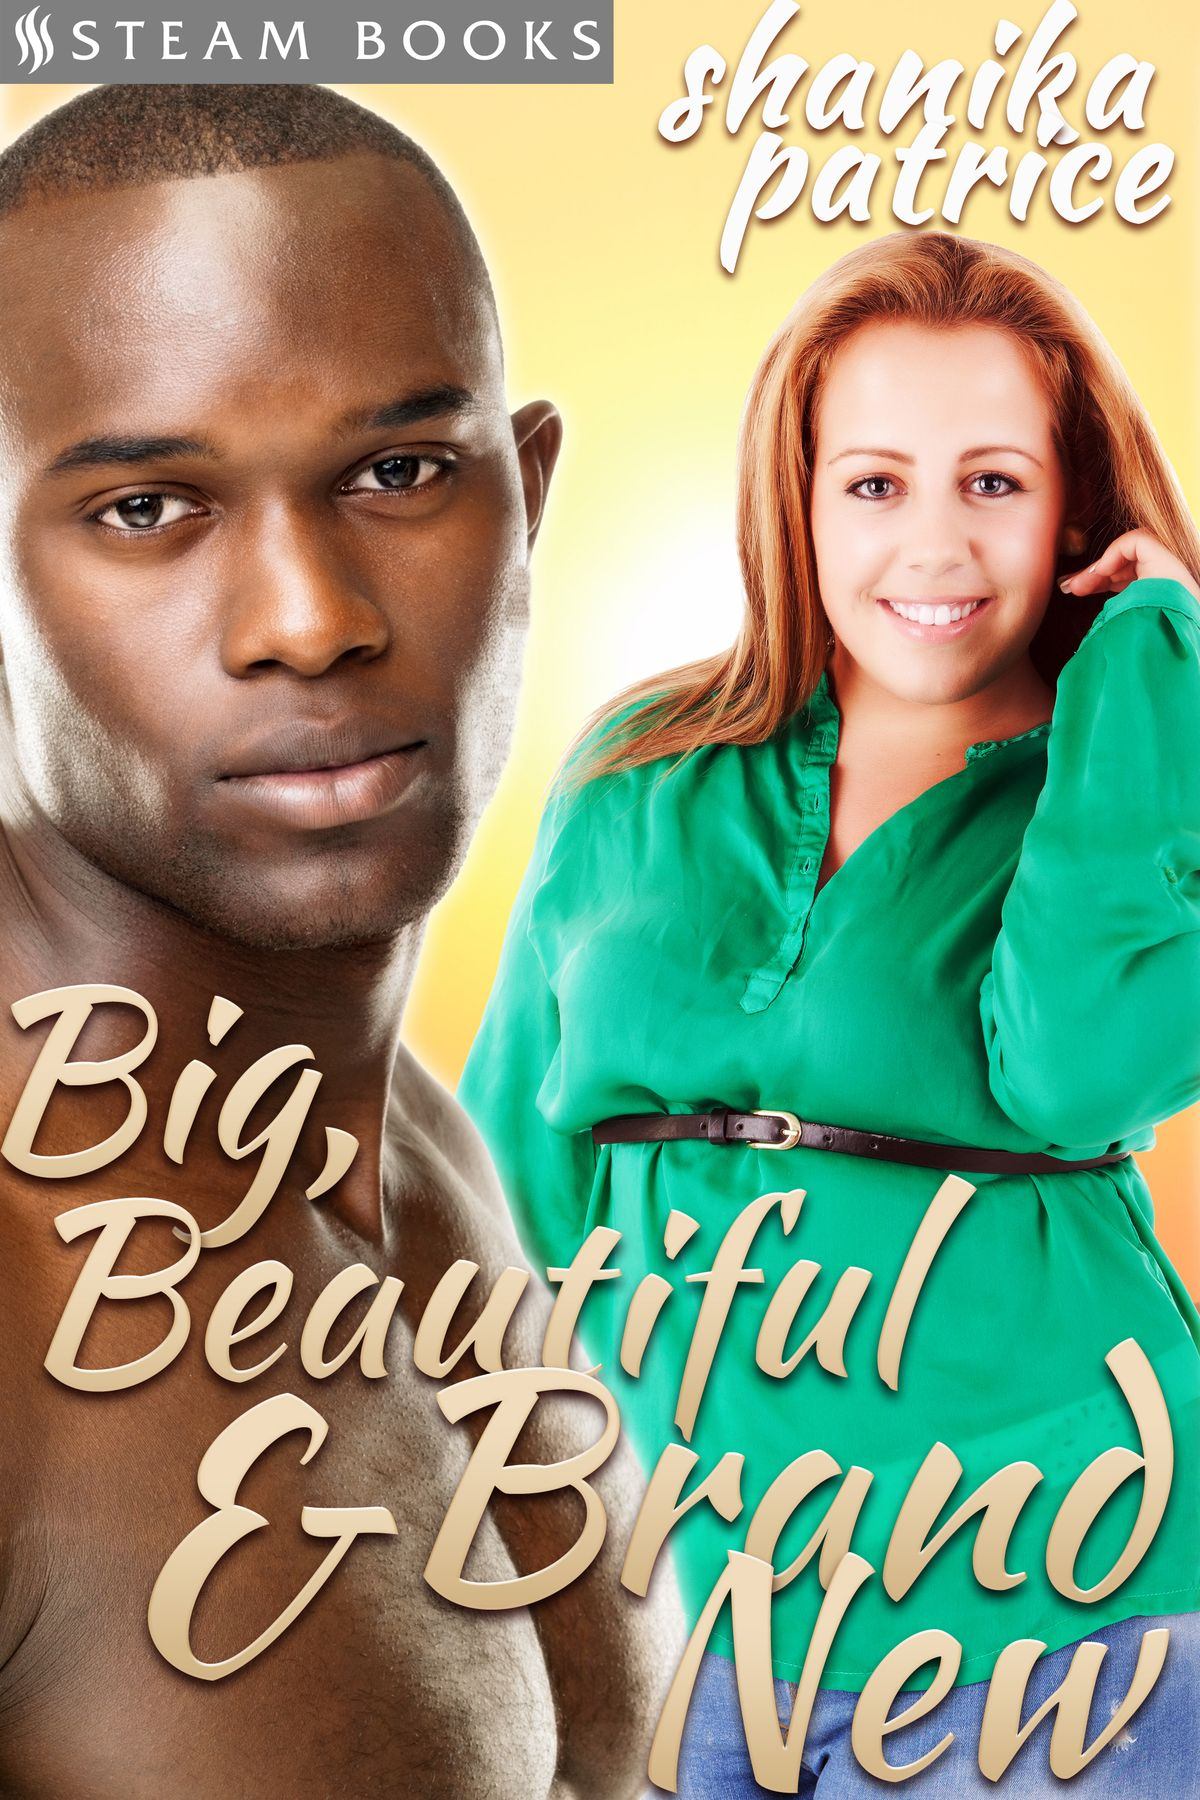 Interracial romance books, pinkworld pron